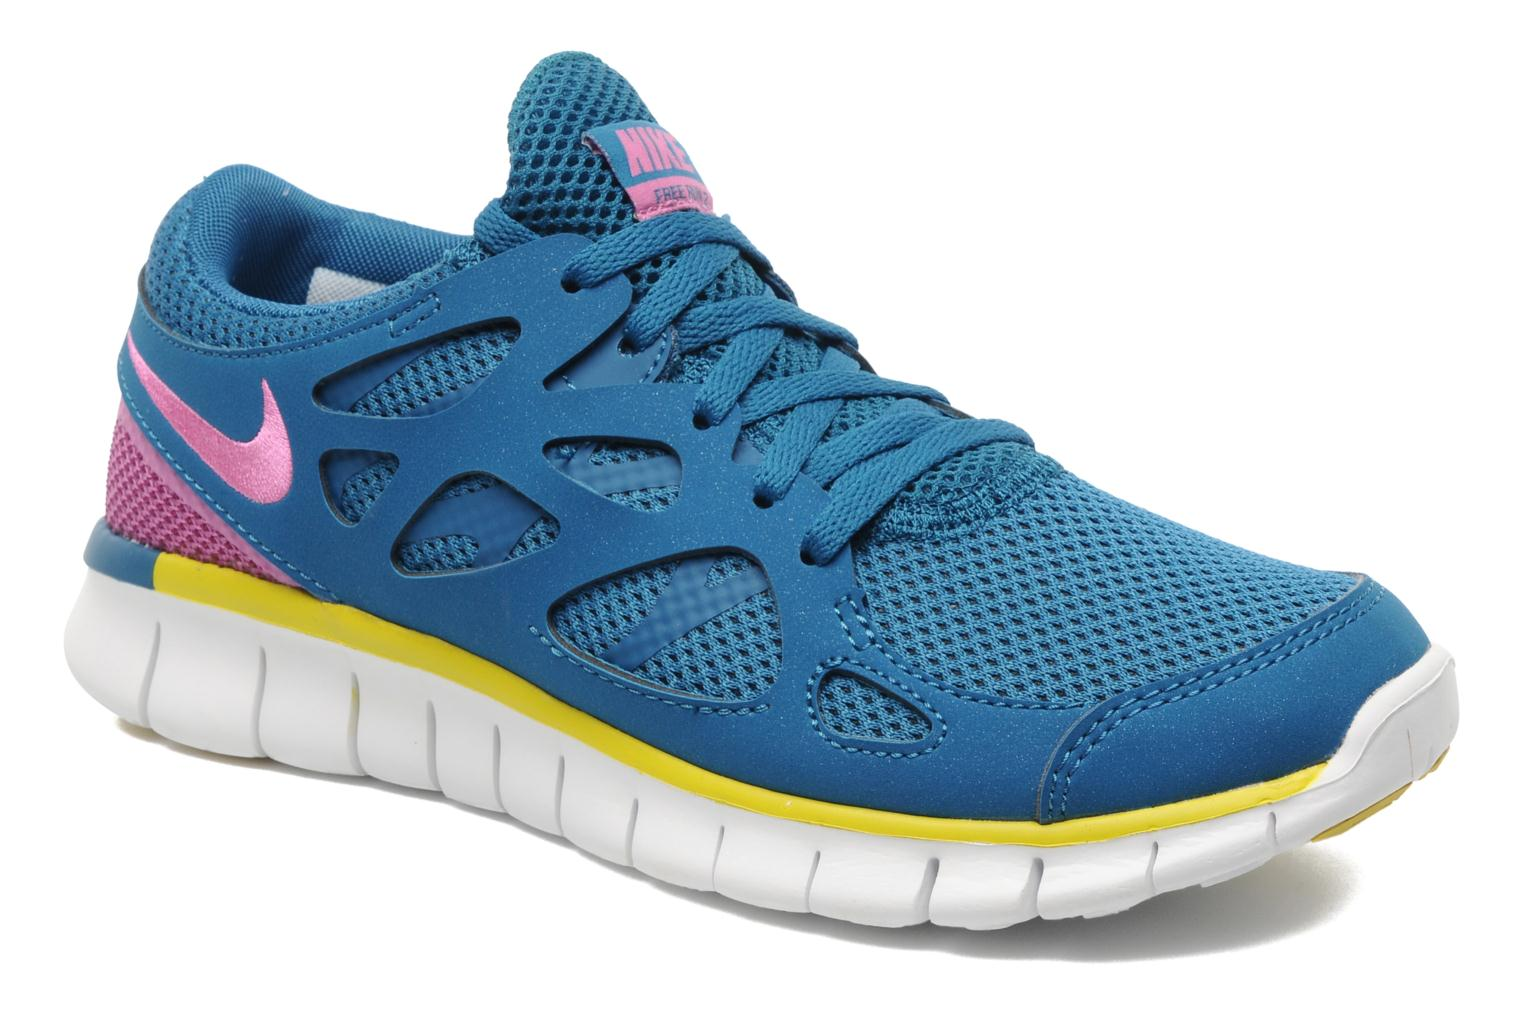 Wmns Nike Free Run+ 2 Ext Green Abyss/Rd Vlt-Brght Ctrn-Bl